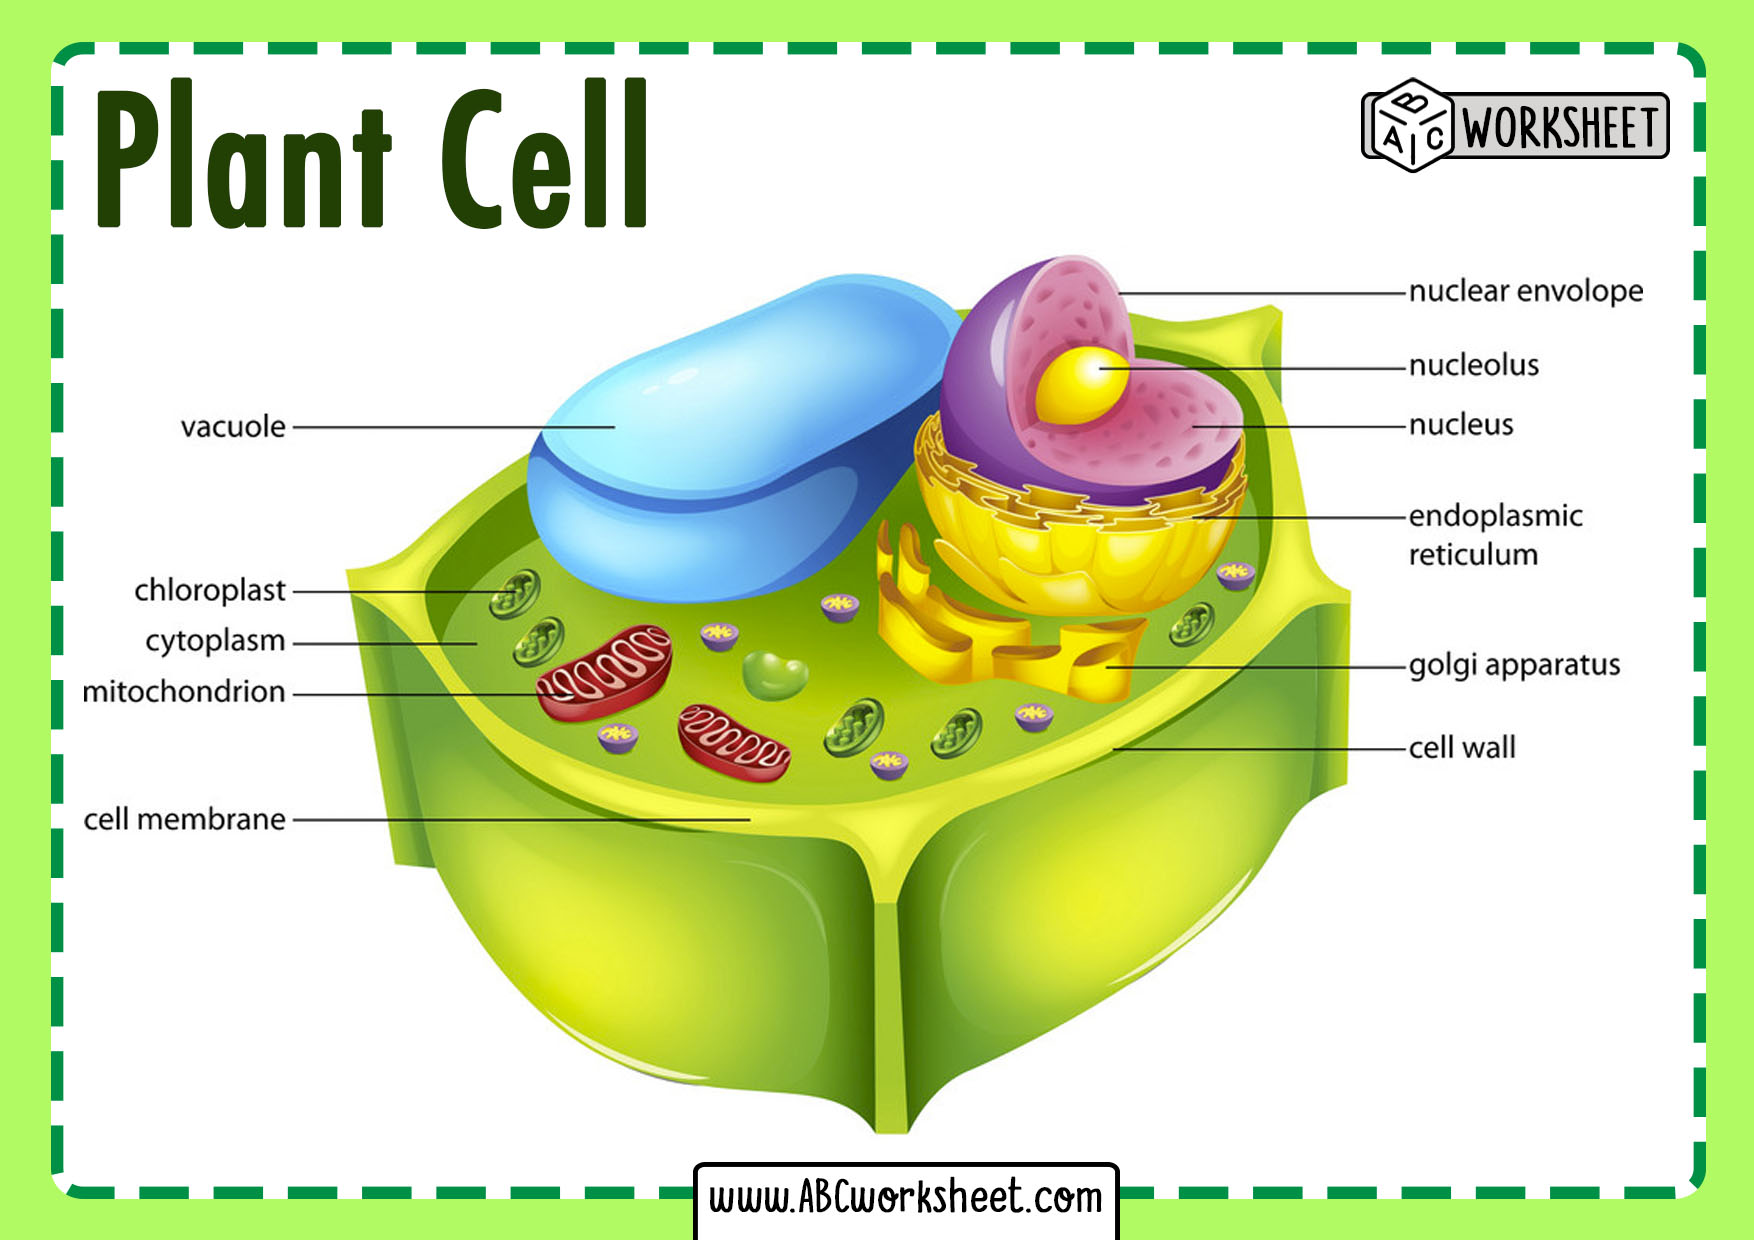 Plant Cell Parts - ABC Worksheet